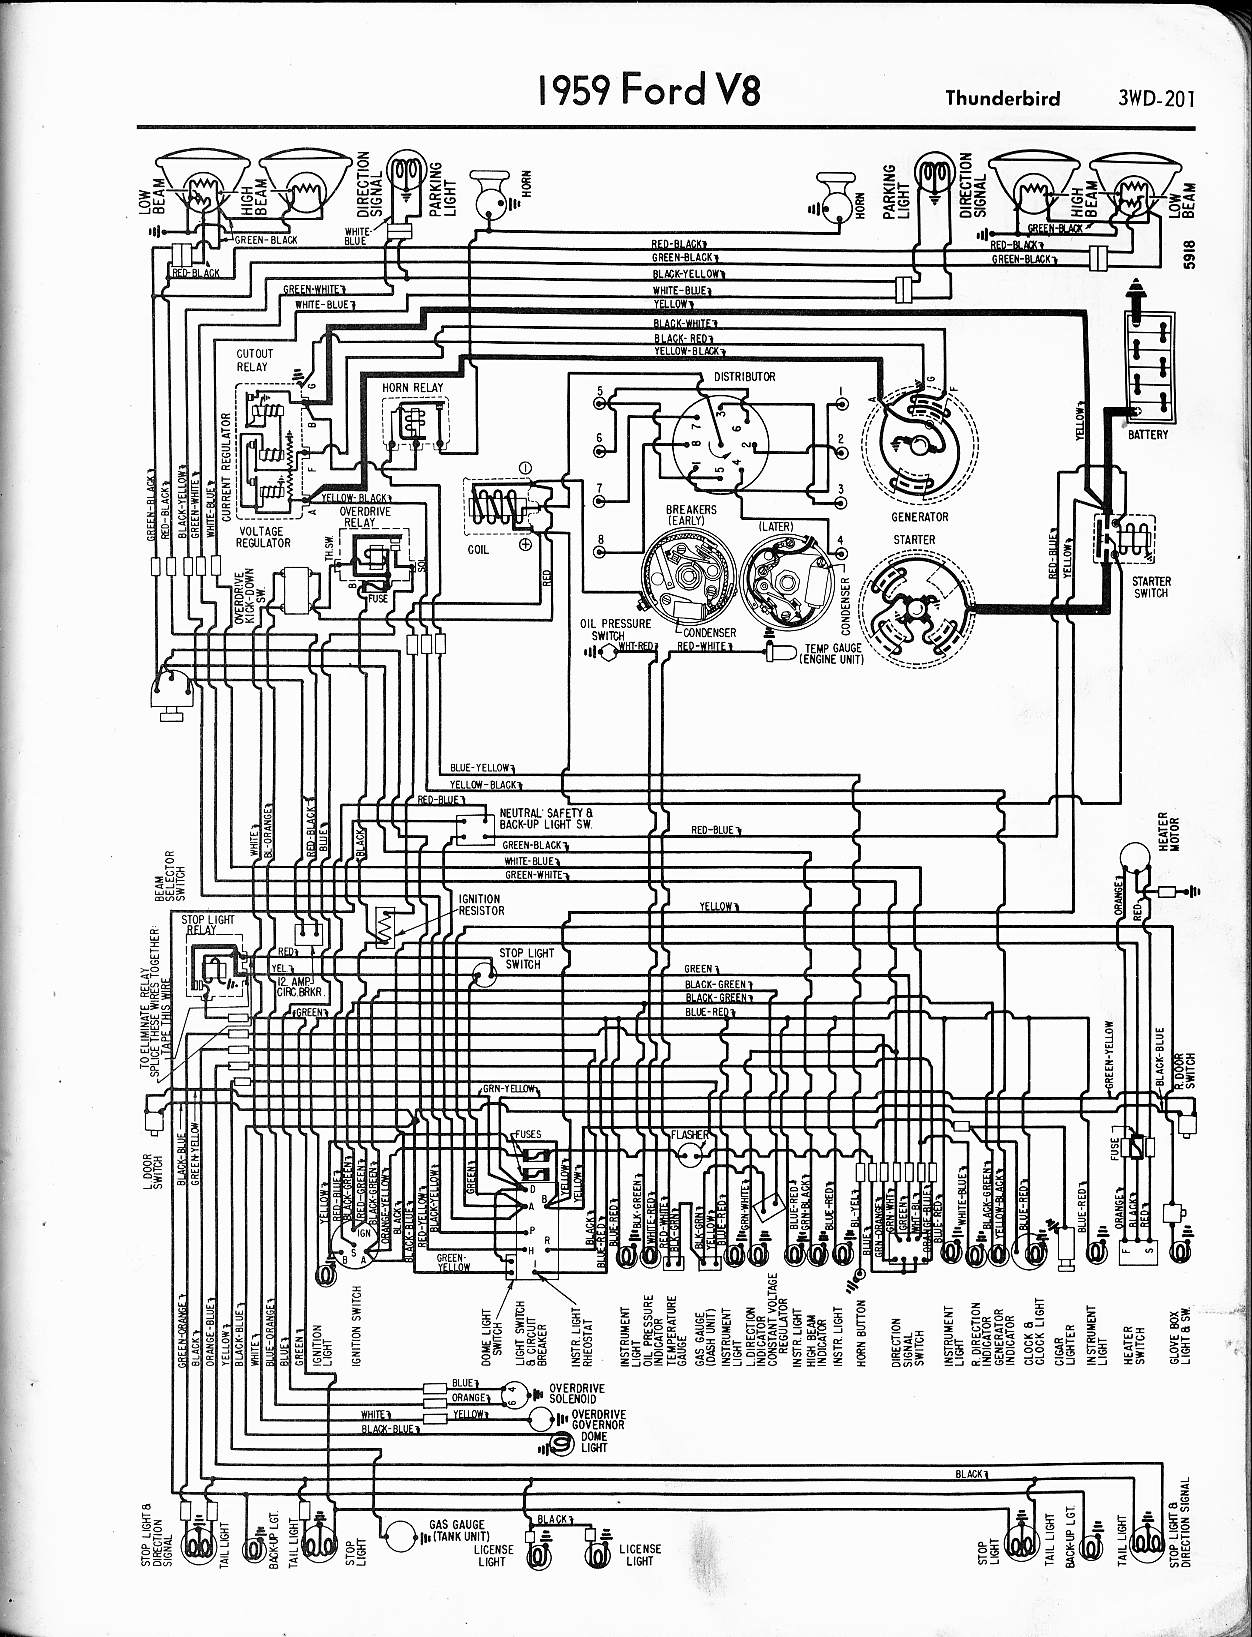 MWire5765 201 57 65 ford wiring diagrams 1970 ford wiring diagram at readyjetset.co